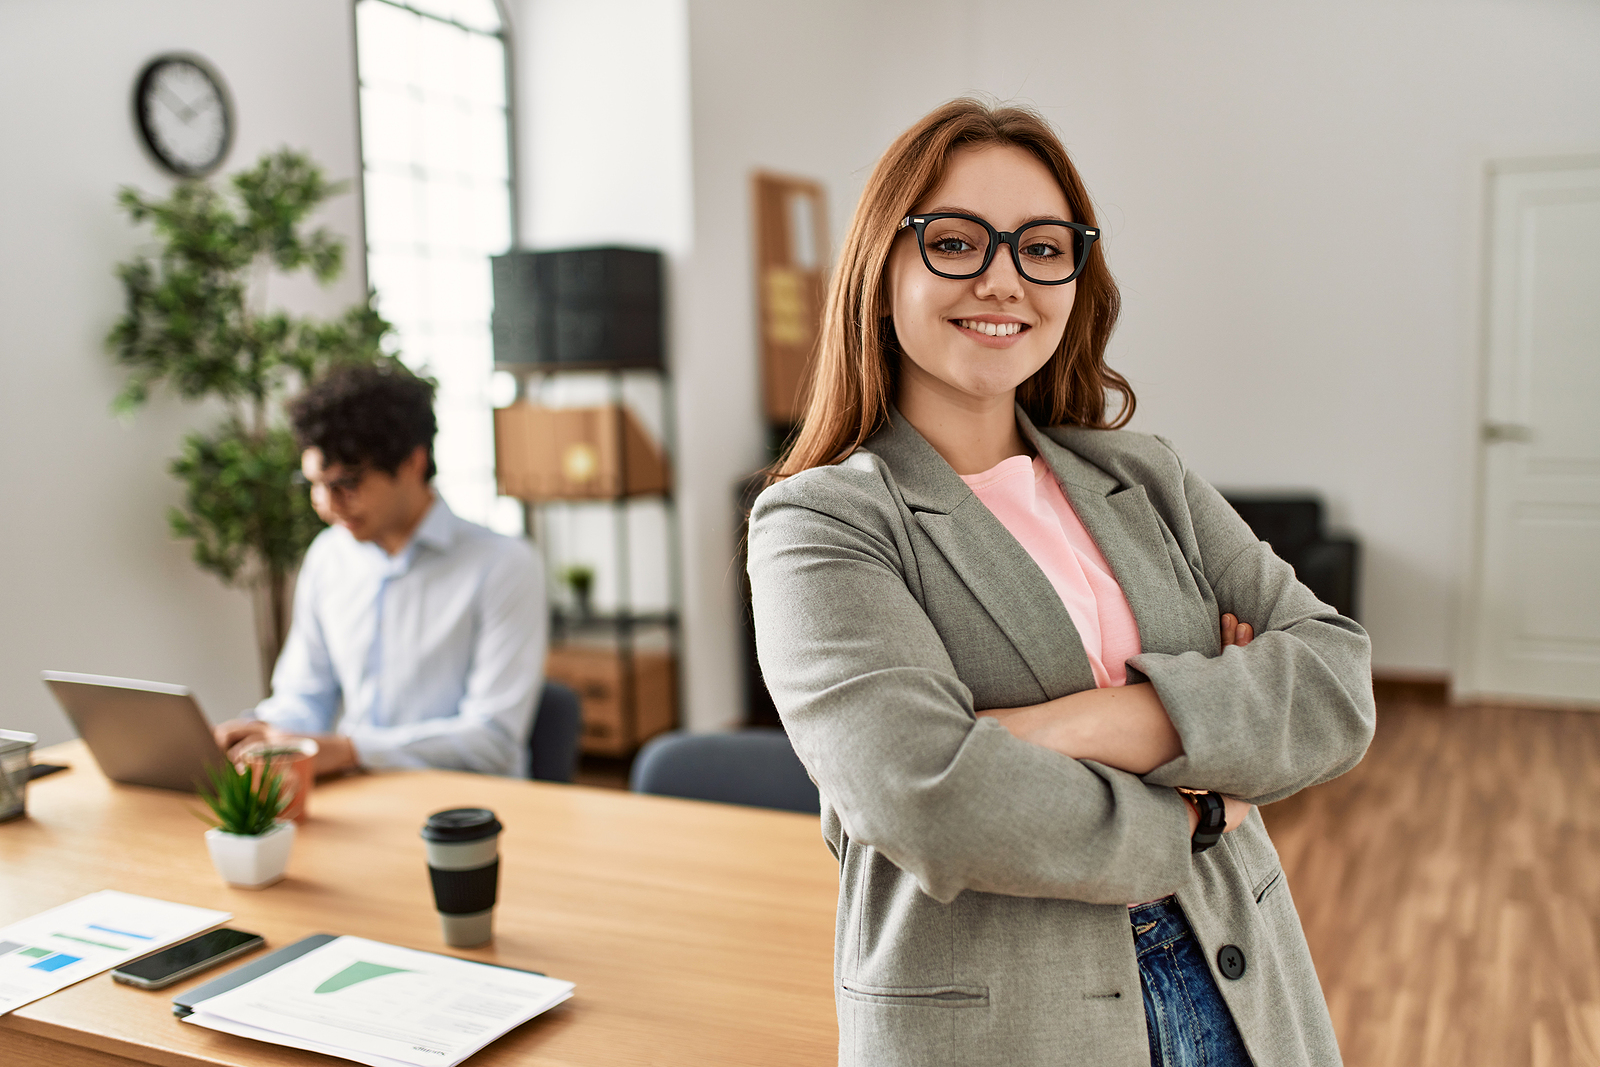 bigstock-Business-manager-smiling-happy-425377706